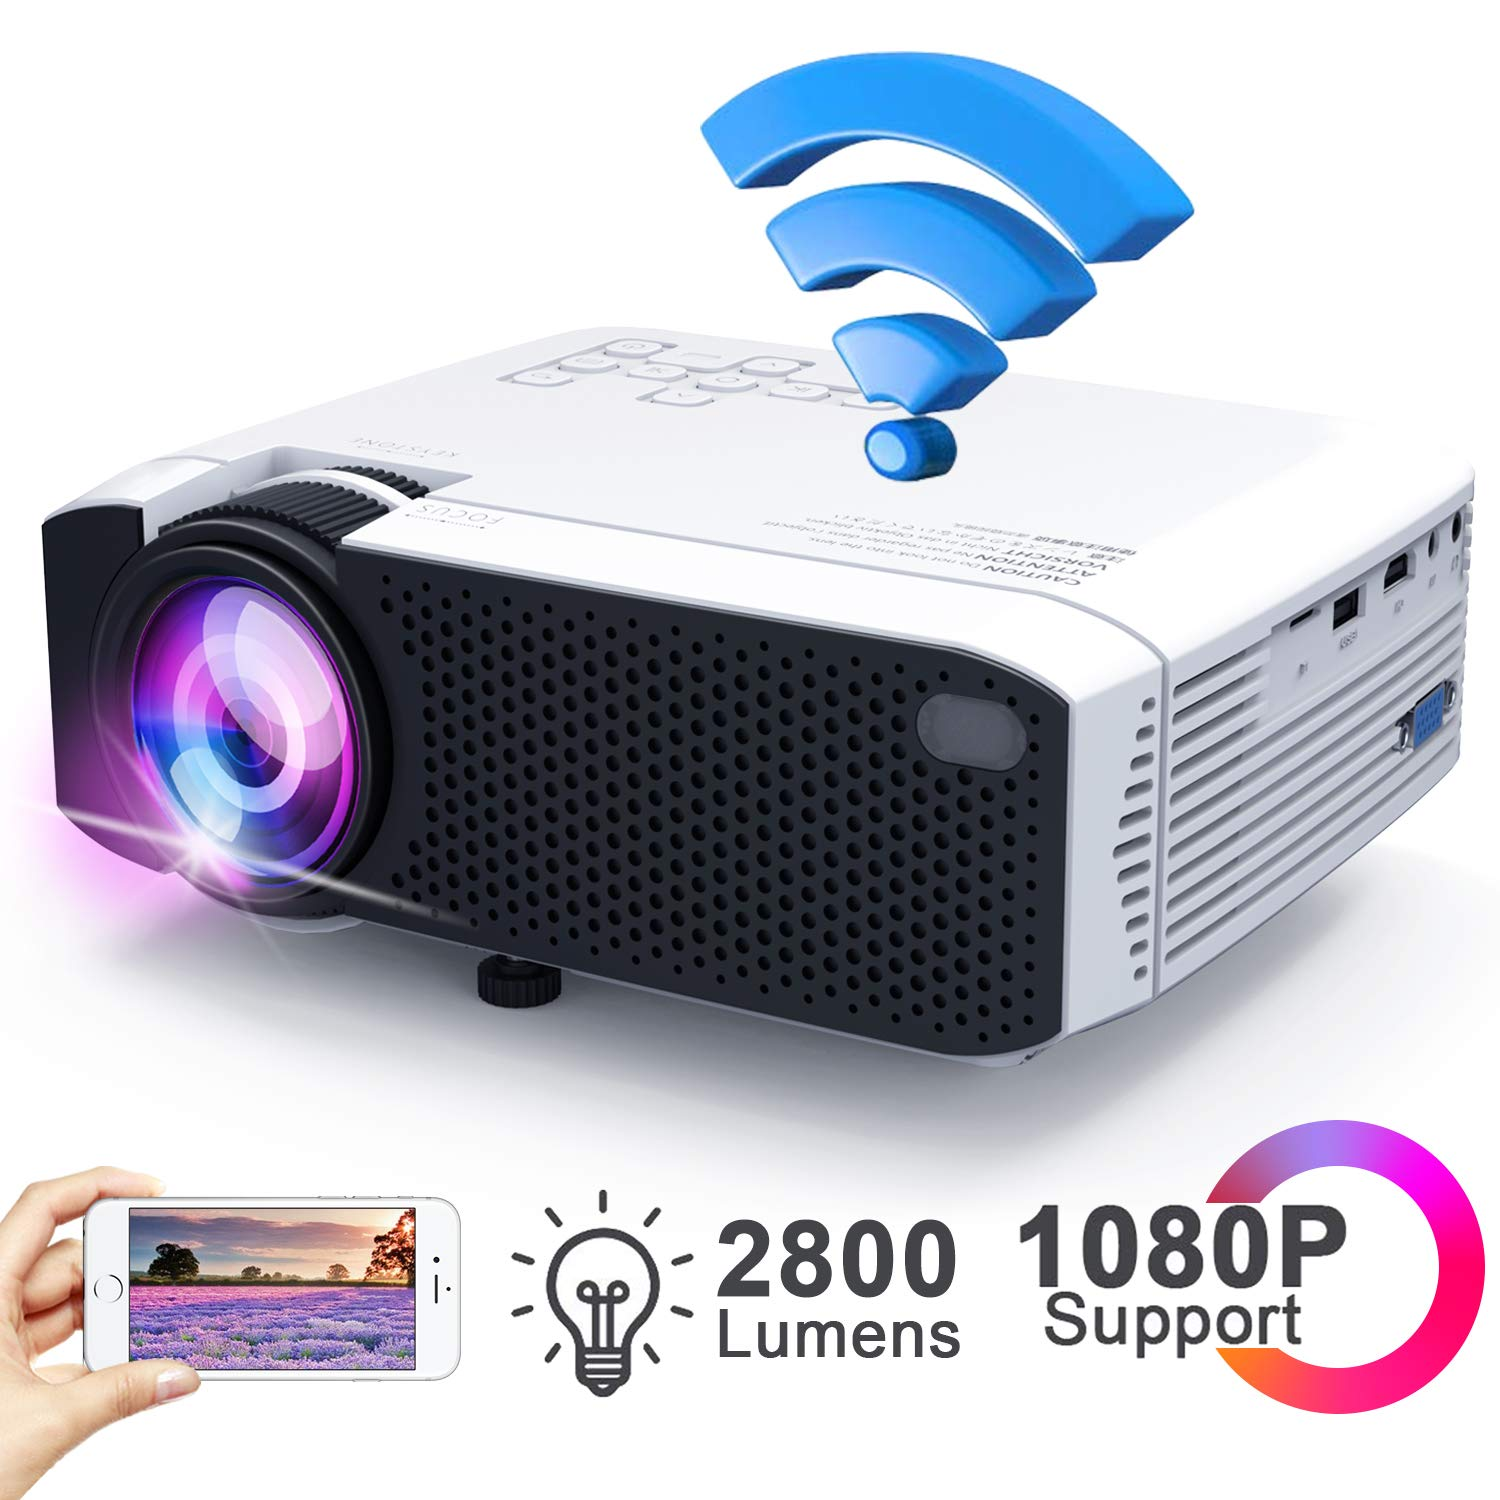 WiFi Mini Projector 2800Lux, Ifmeyasi Wireless Video Projector, Full HD 1080p Portable Movie Projector for Home Outdoors, USB Directly Connect for Smartphones, Support HDMI, VGA, TF Card, AV, USB